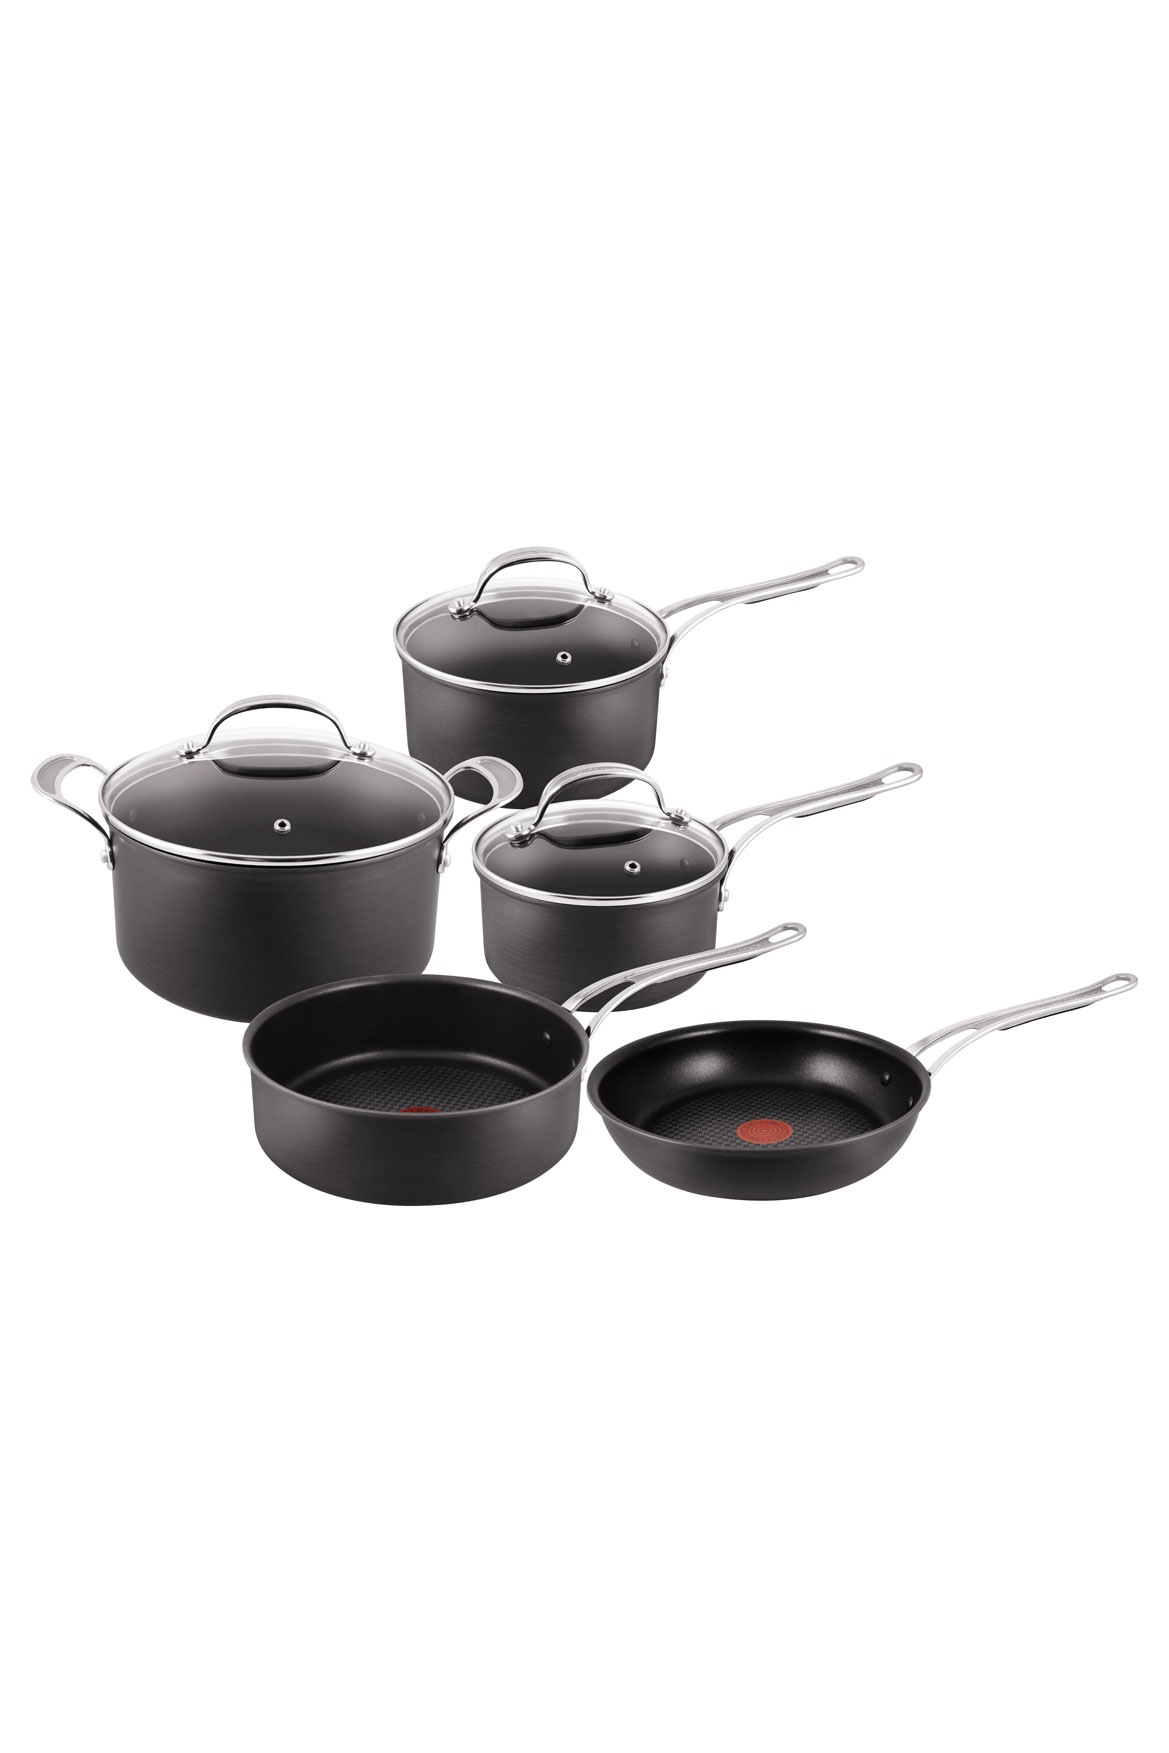 jamie oliver tefal hard anodised 5 piece set myer online. Black Bedroom Furniture Sets. Home Design Ideas